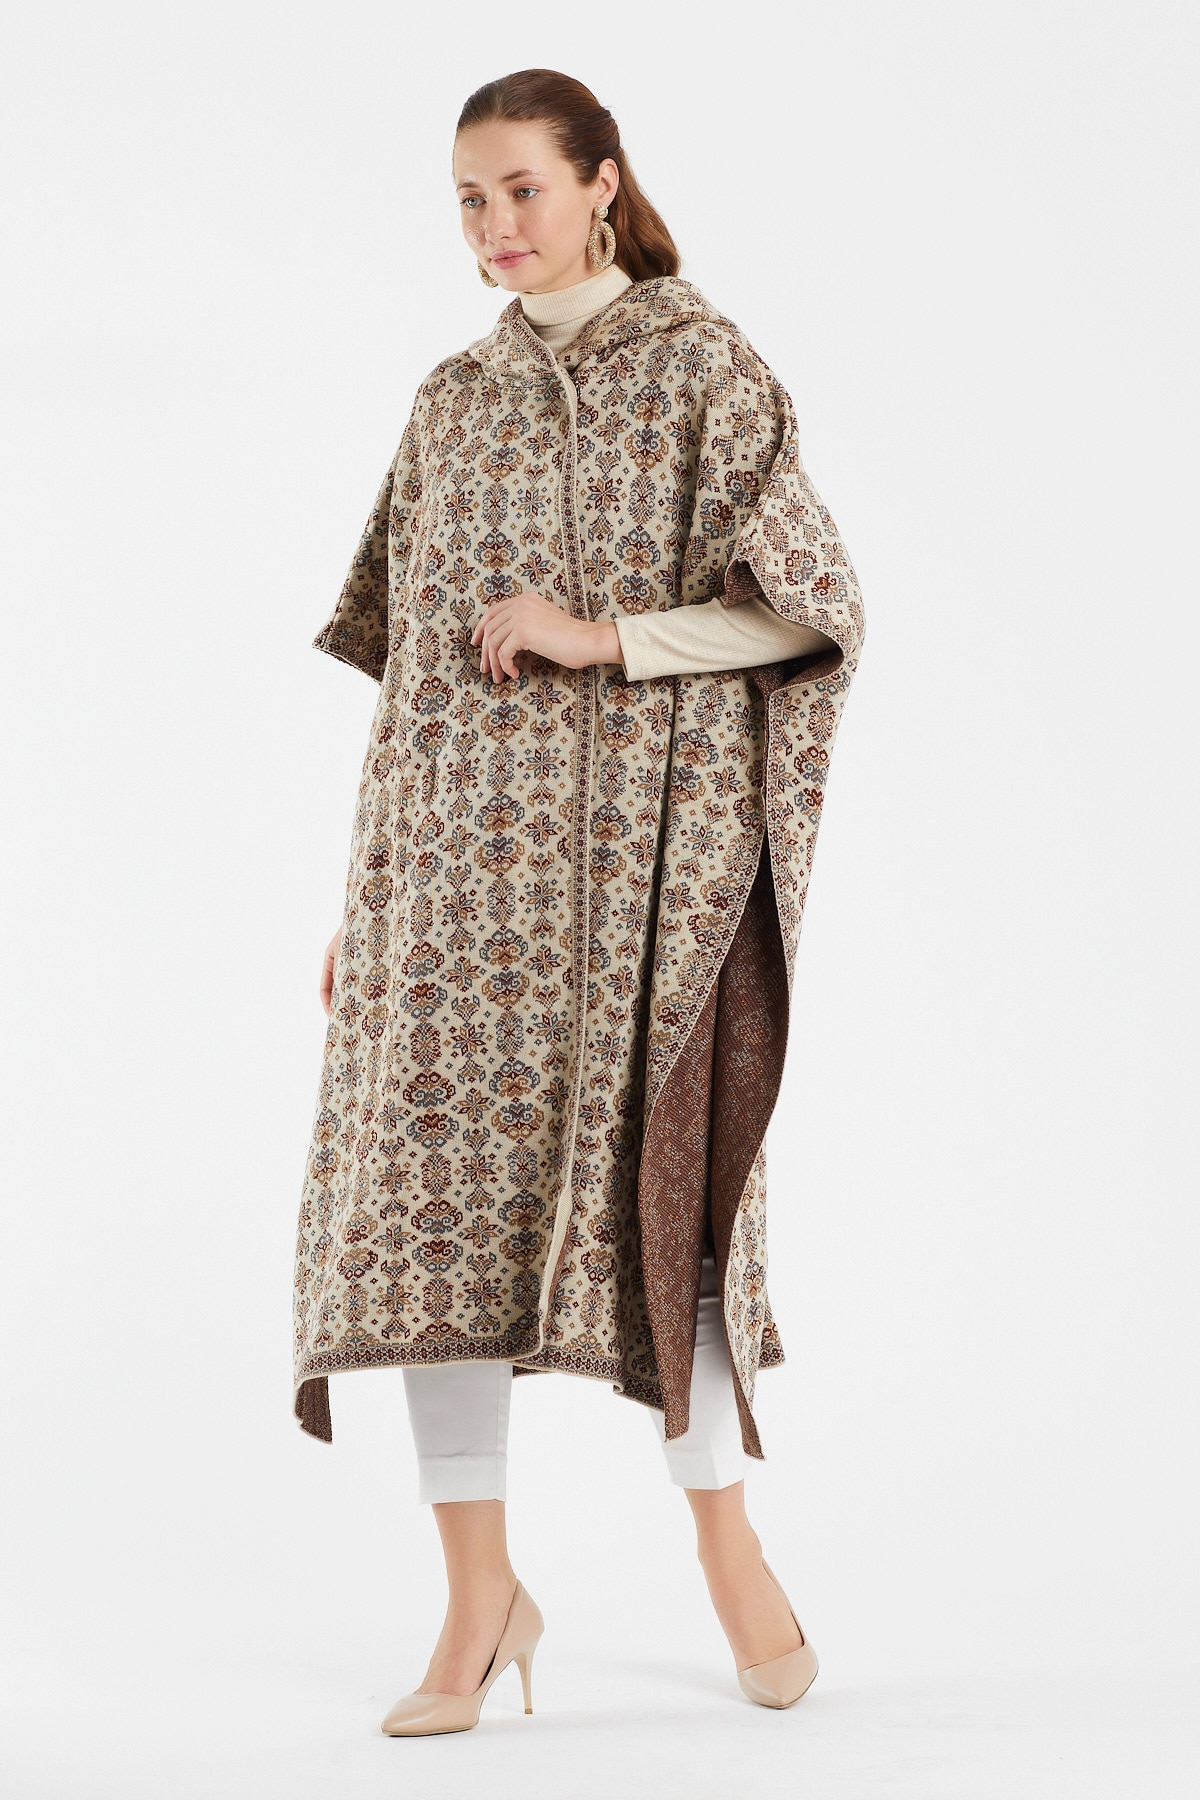 Women's  dress top Shawl Wrap Knitted capes and Poncho –traf bts Oversized hoodie Cardigan  Open Front Tassel Cape for Winter enlarge